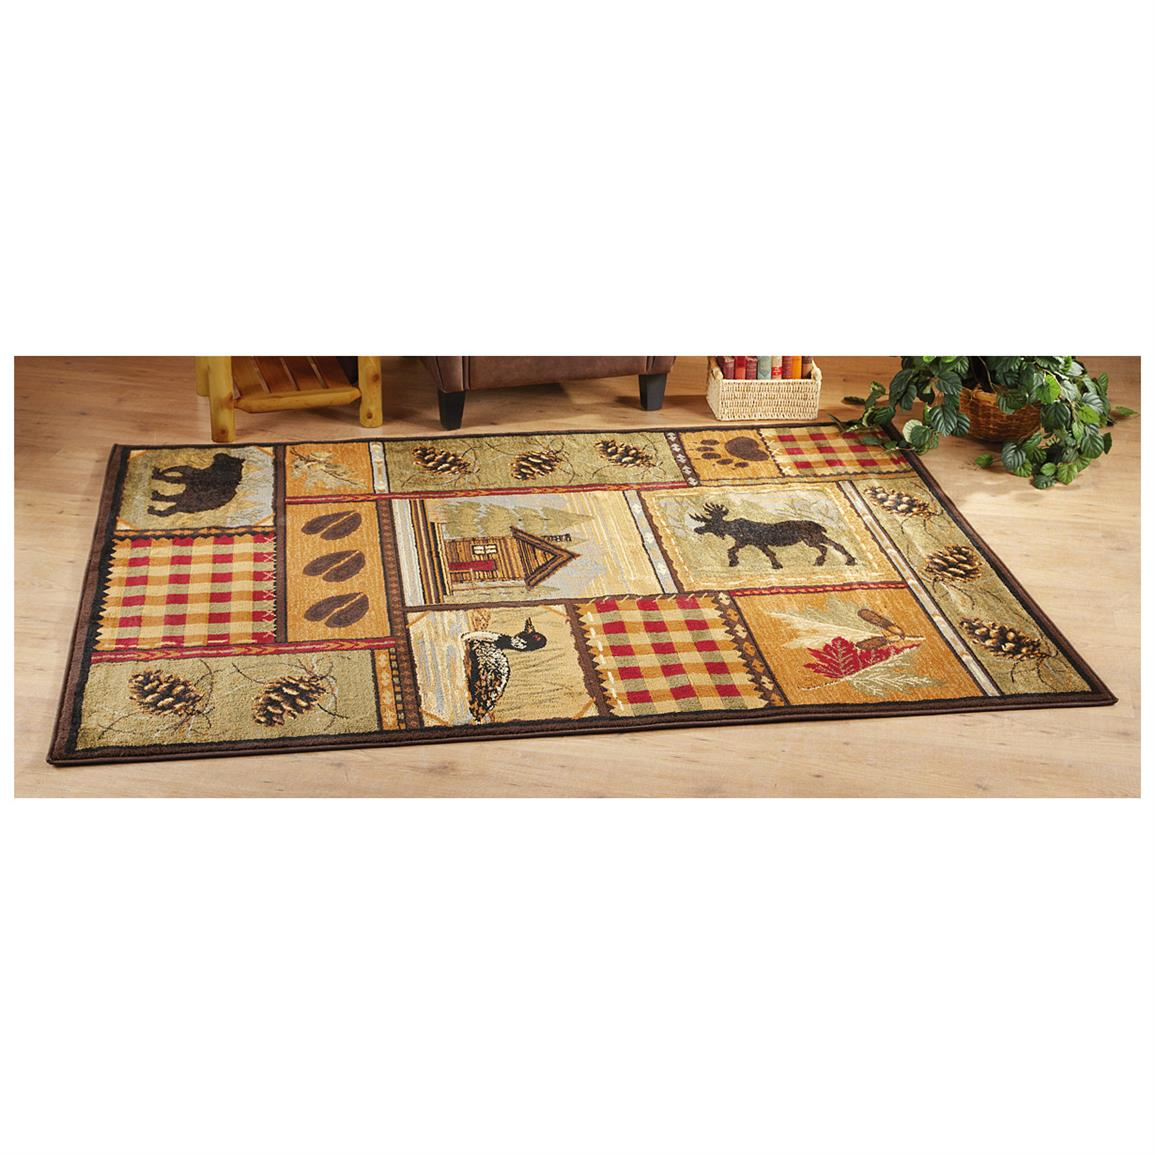 Lodge Area Rug, Cabin